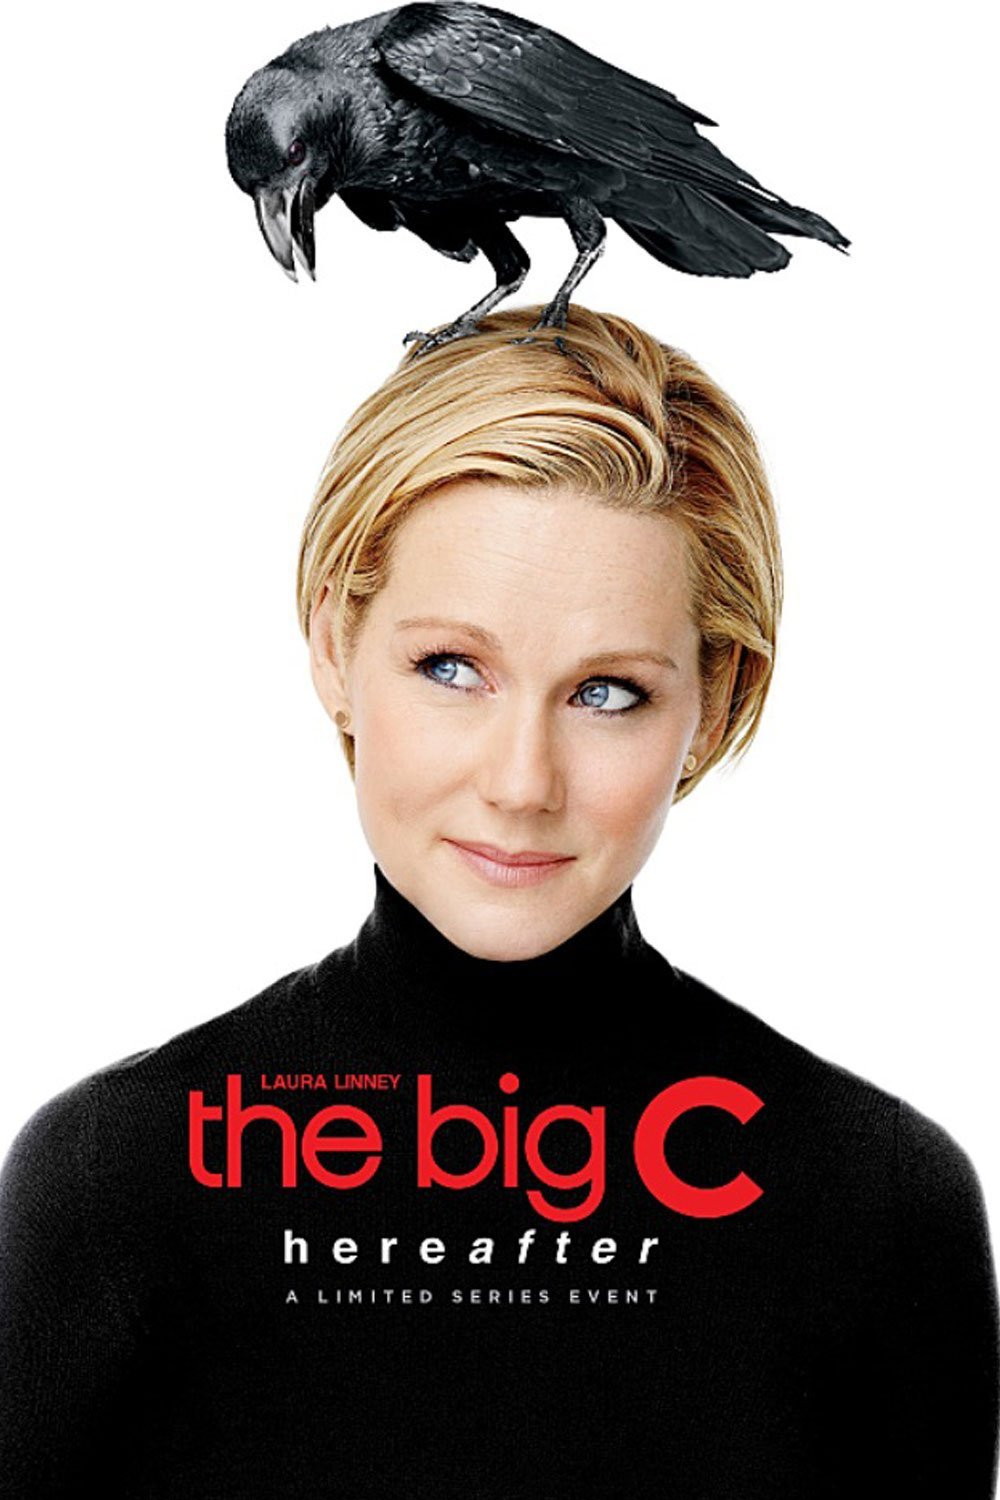 the Big C, Andria Blackman, Andrea Blackman, Andria Lee Murphy, Andria Murphy, Model Lifestyle Model, The Way Way Back, My Best Friend's Girl, Chappaquiddick, Ted Kennedy, Joan Kennedy, Actress, Actor, American Actress, Stunt Woman, Stunt Double, Icon Recreation Project, Dana Farber, Jimmy Fund, Marilyn, Claudia, Cindy, Olivia, Audrey, Madonna, Ursula, Grace